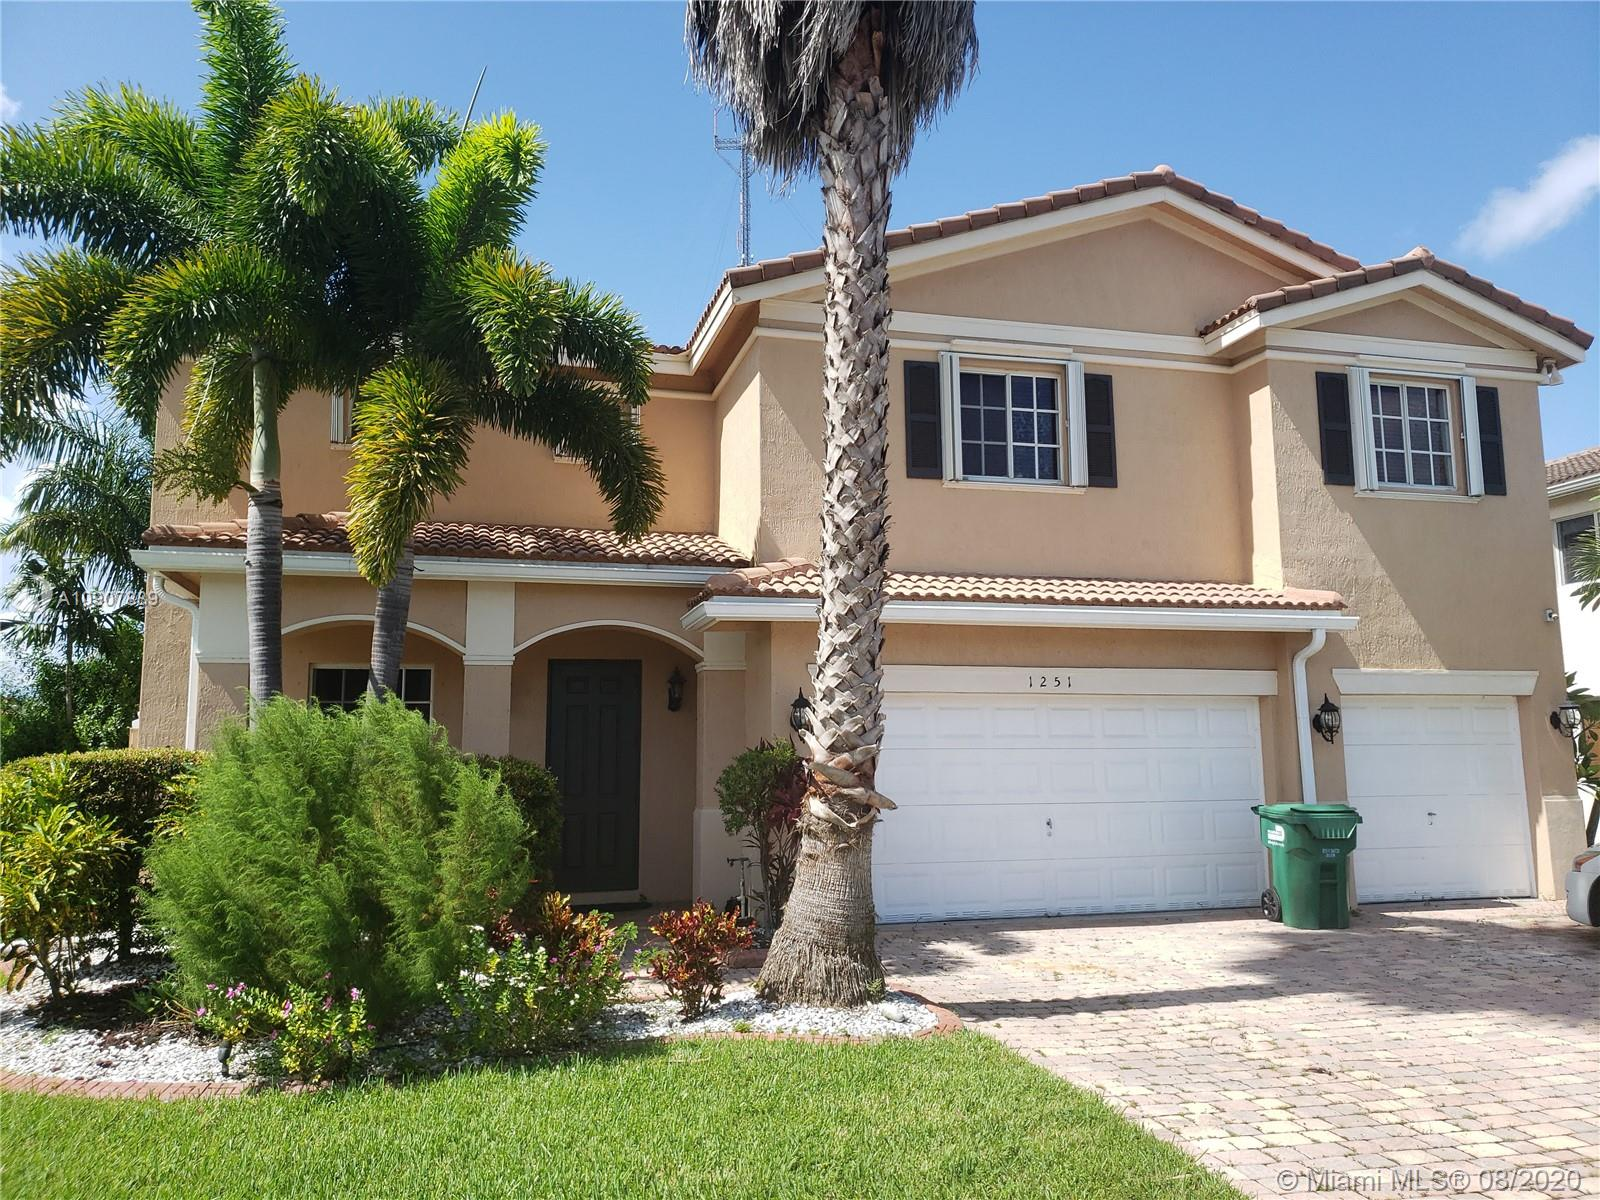 This a gorgeous single-family home located in a gated community.  This home has 6 BR & 4 baths with ceramic tile in the living areas & carpets upstairs. Spacious dining and living areas leading to a large outside patio perfect for entertainment.